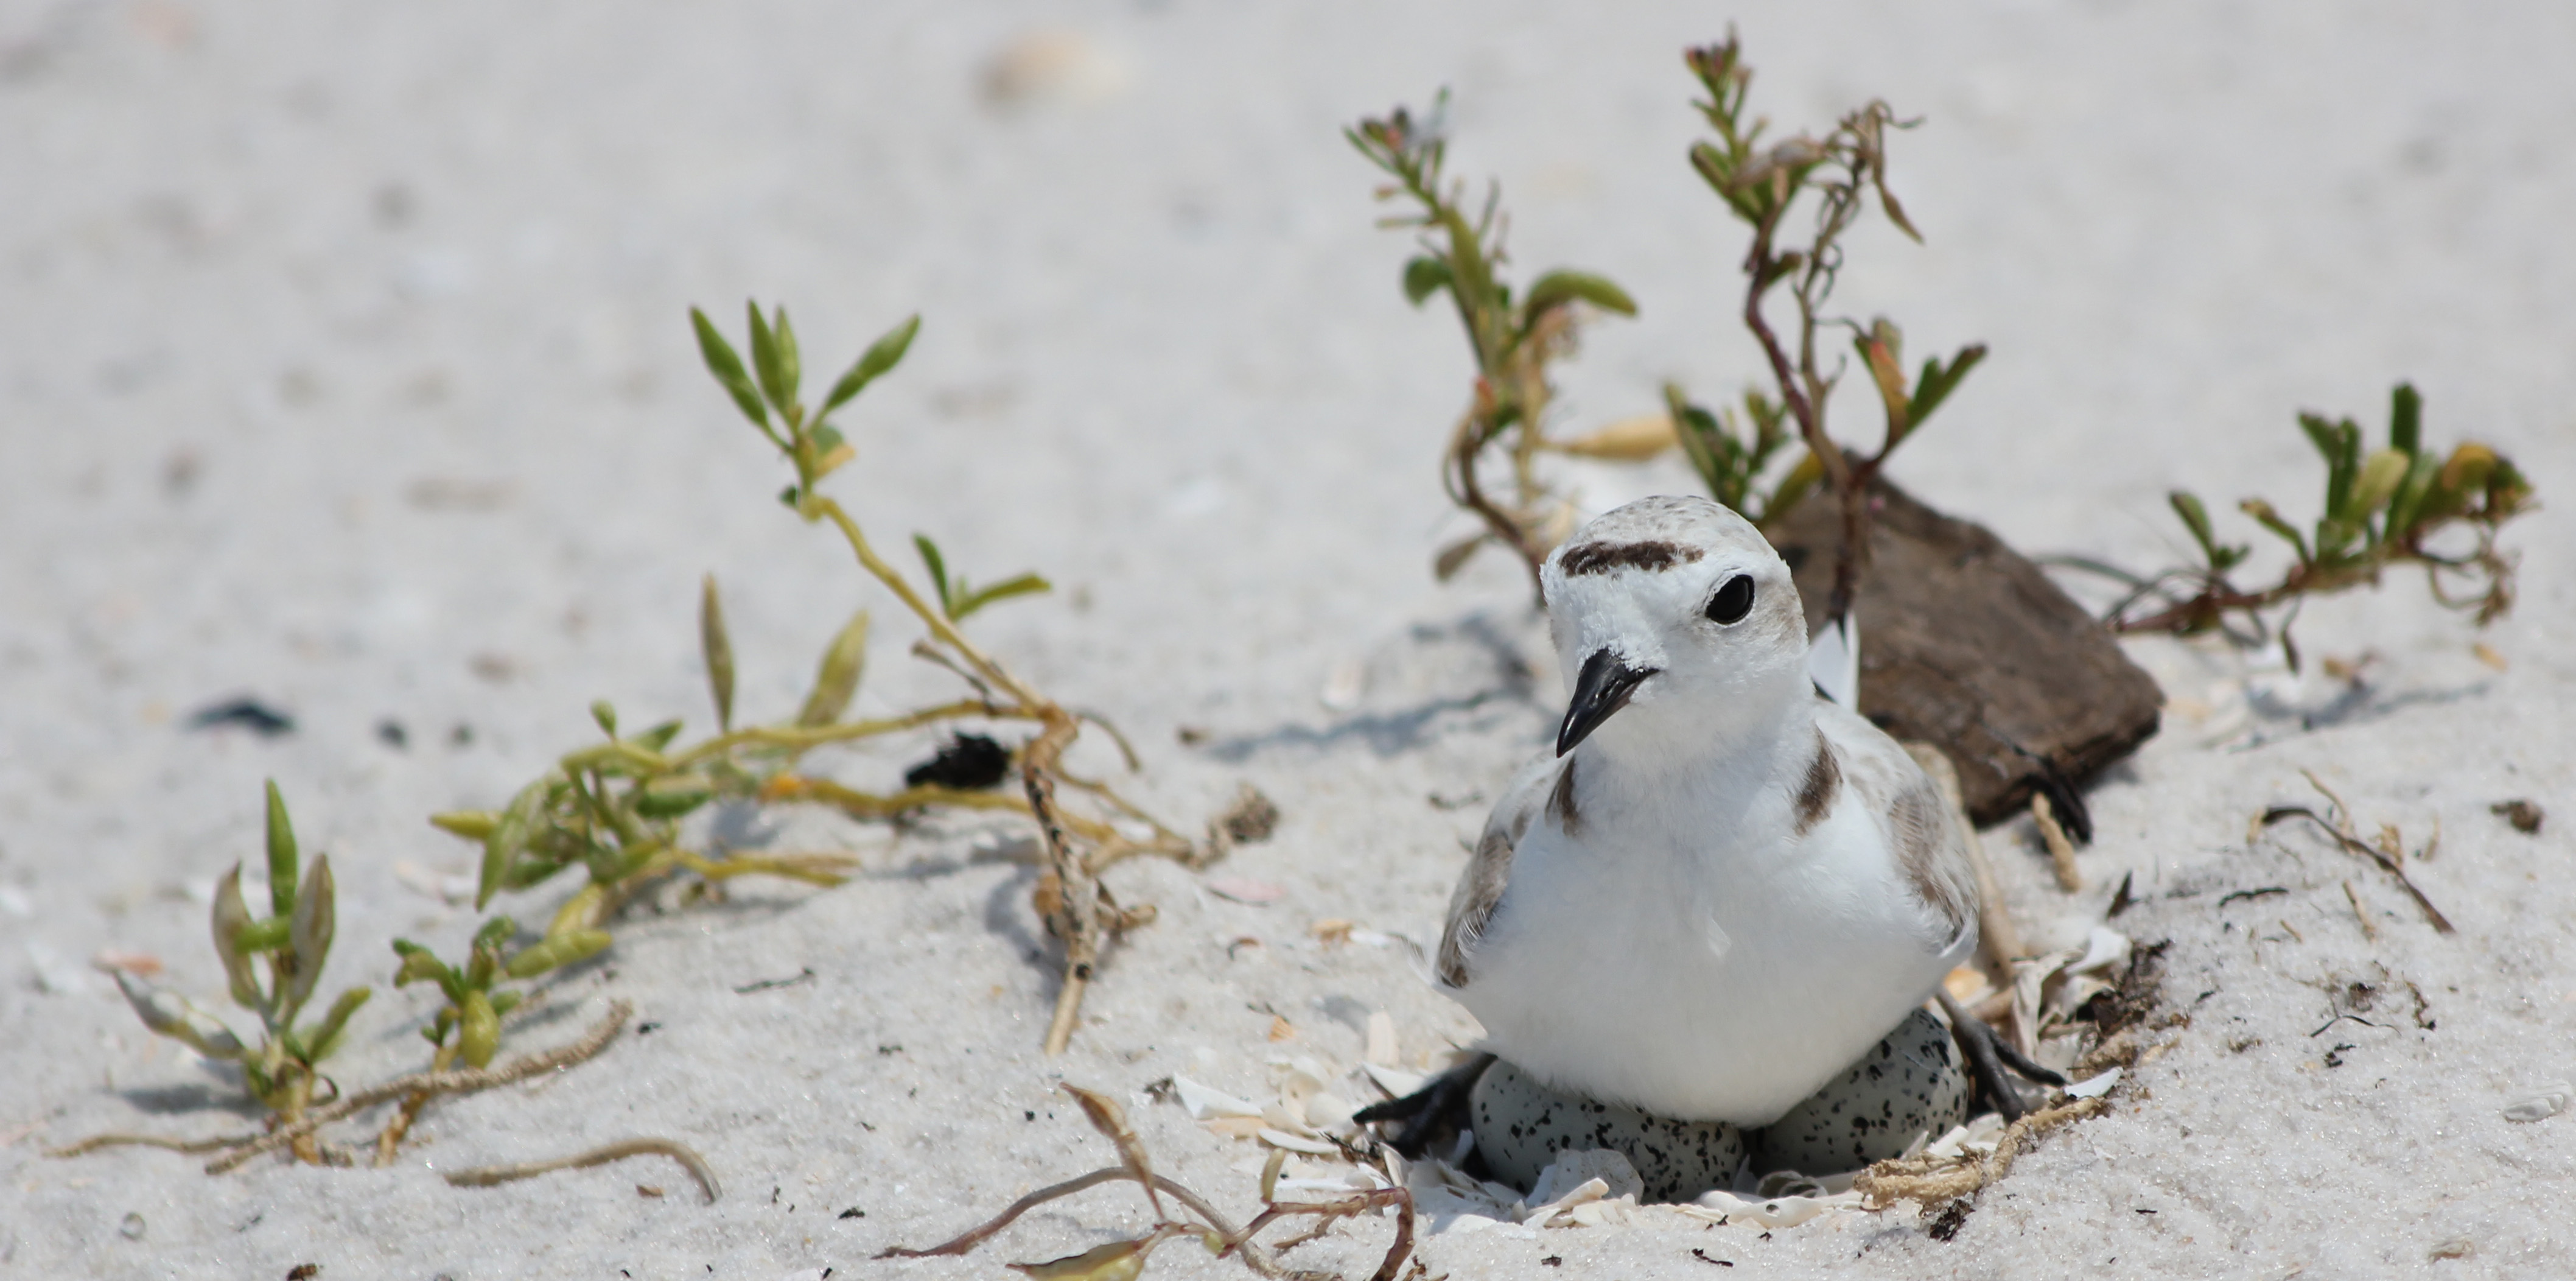 A shorebird sits on black spotted eggs